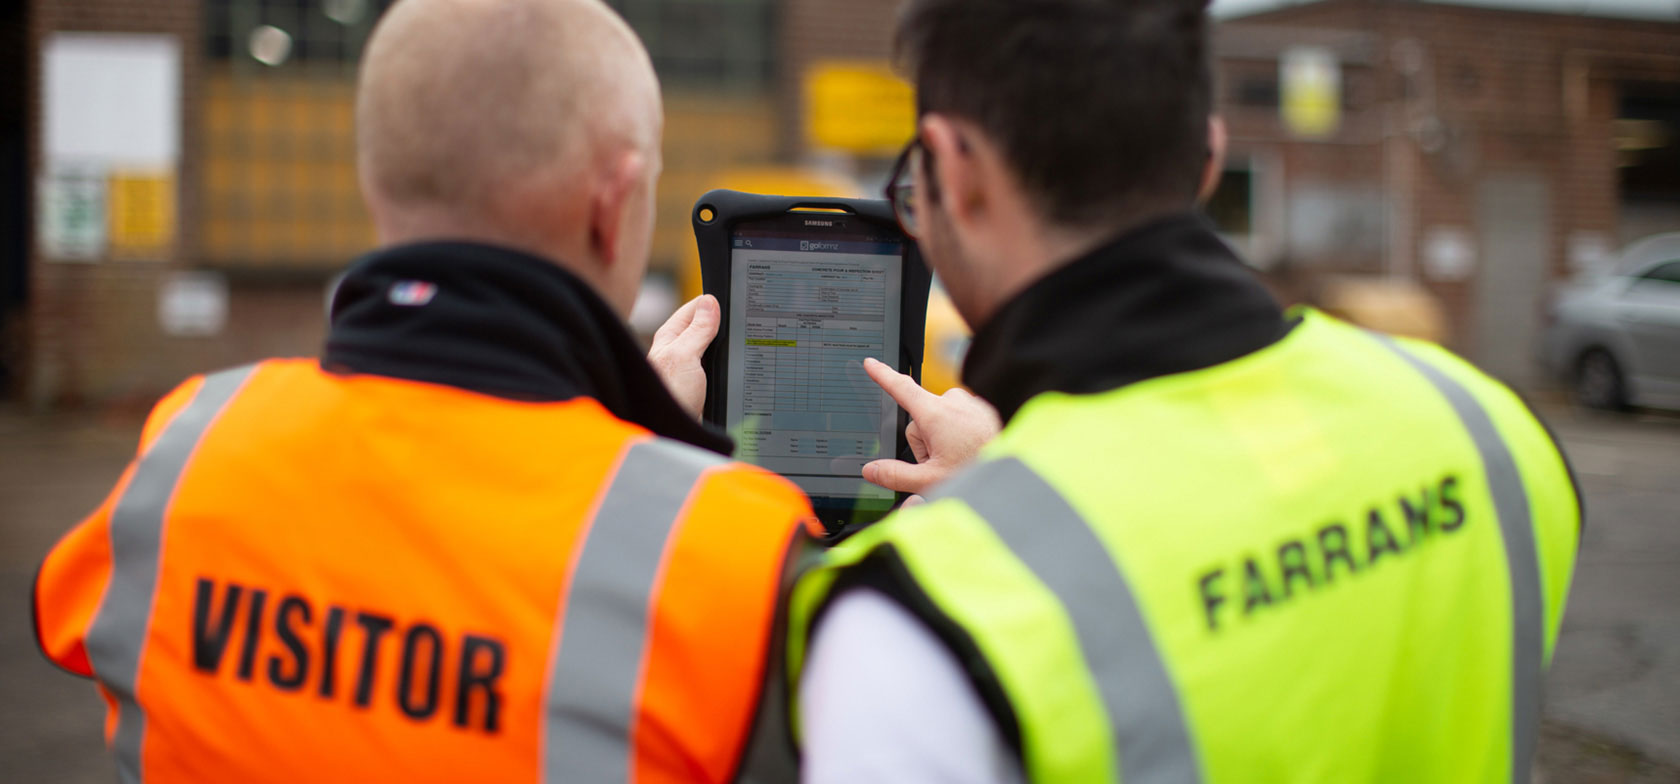 Two Farrans Construction engineers fill out a mobile form in the GoFormz app on a tablet, wearing yellow and orange safety vests